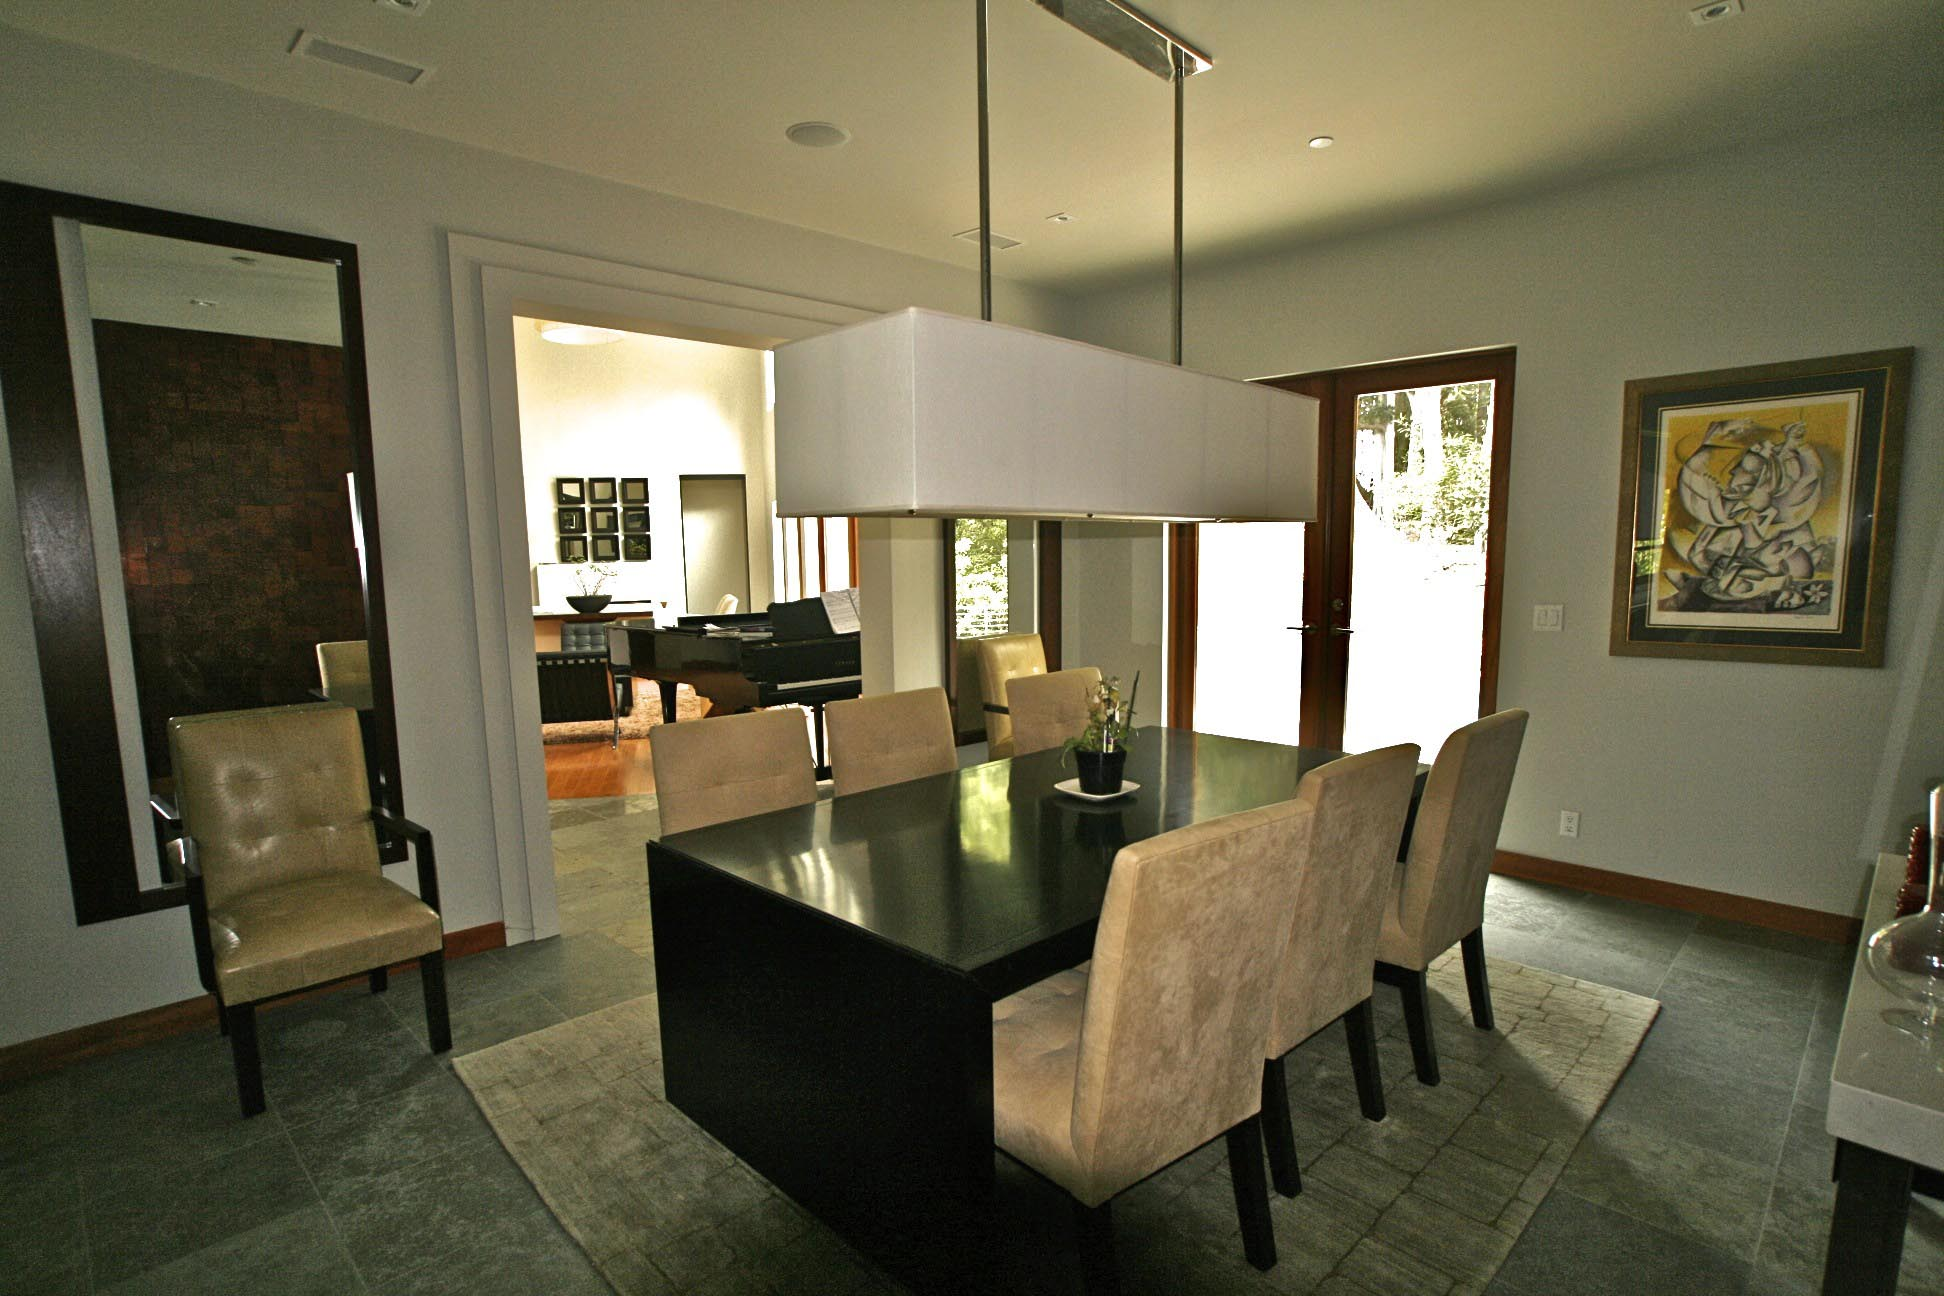 dining light fixtures make the dining room bright and warm light